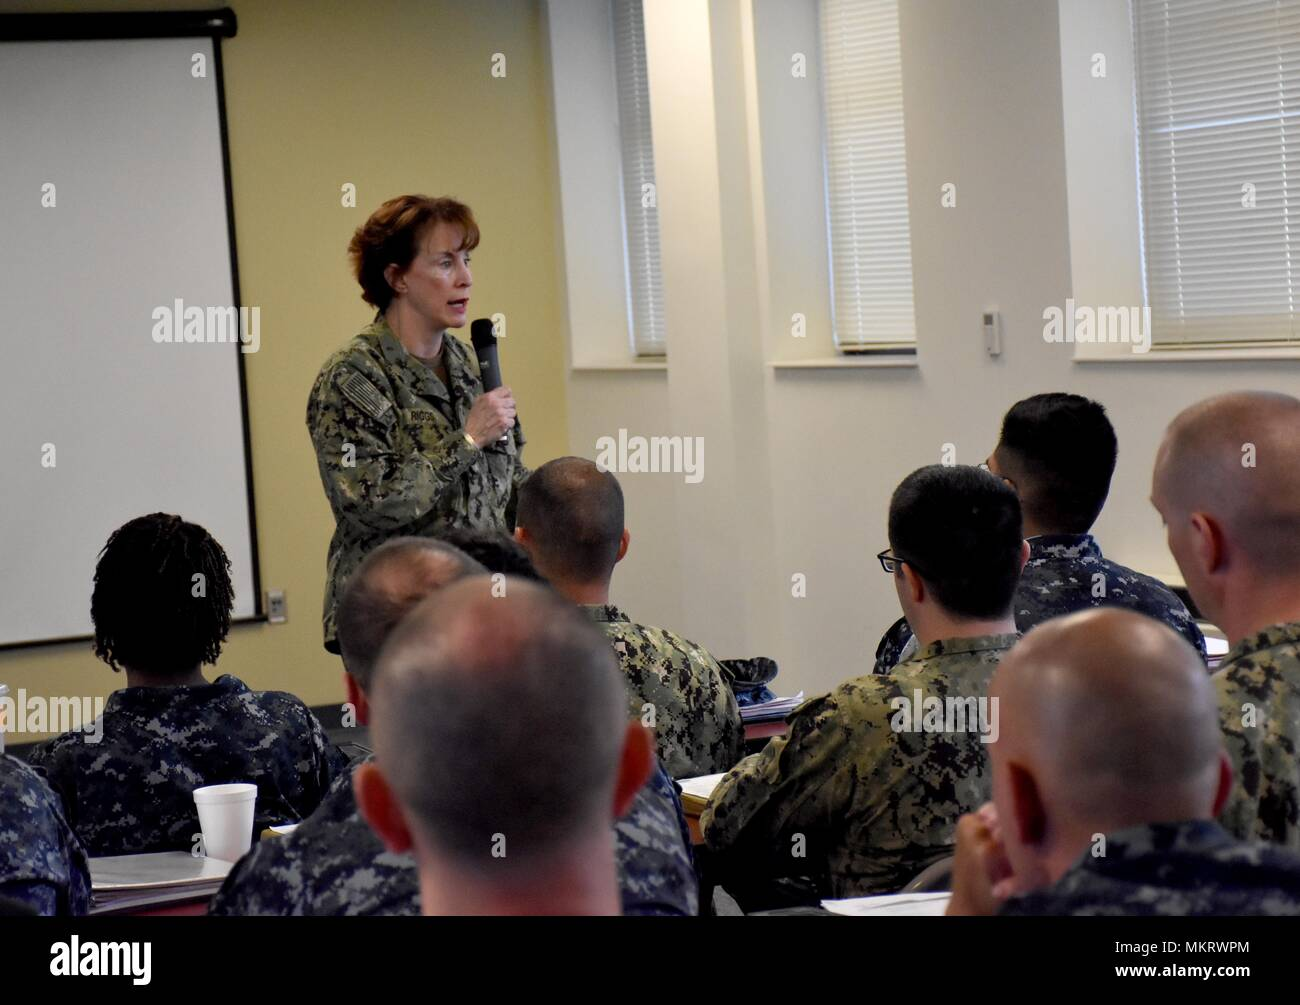 Norfolk, Va. (May 7, 2018) Rear Admiral Mary Riggs, Director, Research and Development, Defense Health Agency speaks at Expeditionary Combat Readiness Centers (ECRC) to members of Expeditionary Medical Unit (EMU) 5 prior to their deployment, May 7, 2018. ECRC provides processing, equipping, training, certification and proactive family support to ADSW Sailors, Individual Augmentees and provisional units throughout all deployment phases in support of combatant commanders requirements, contingency operations, or national crises. (U.S. Navy photo by Chief Mass Communication Specialist James C. Bro - Stock Image